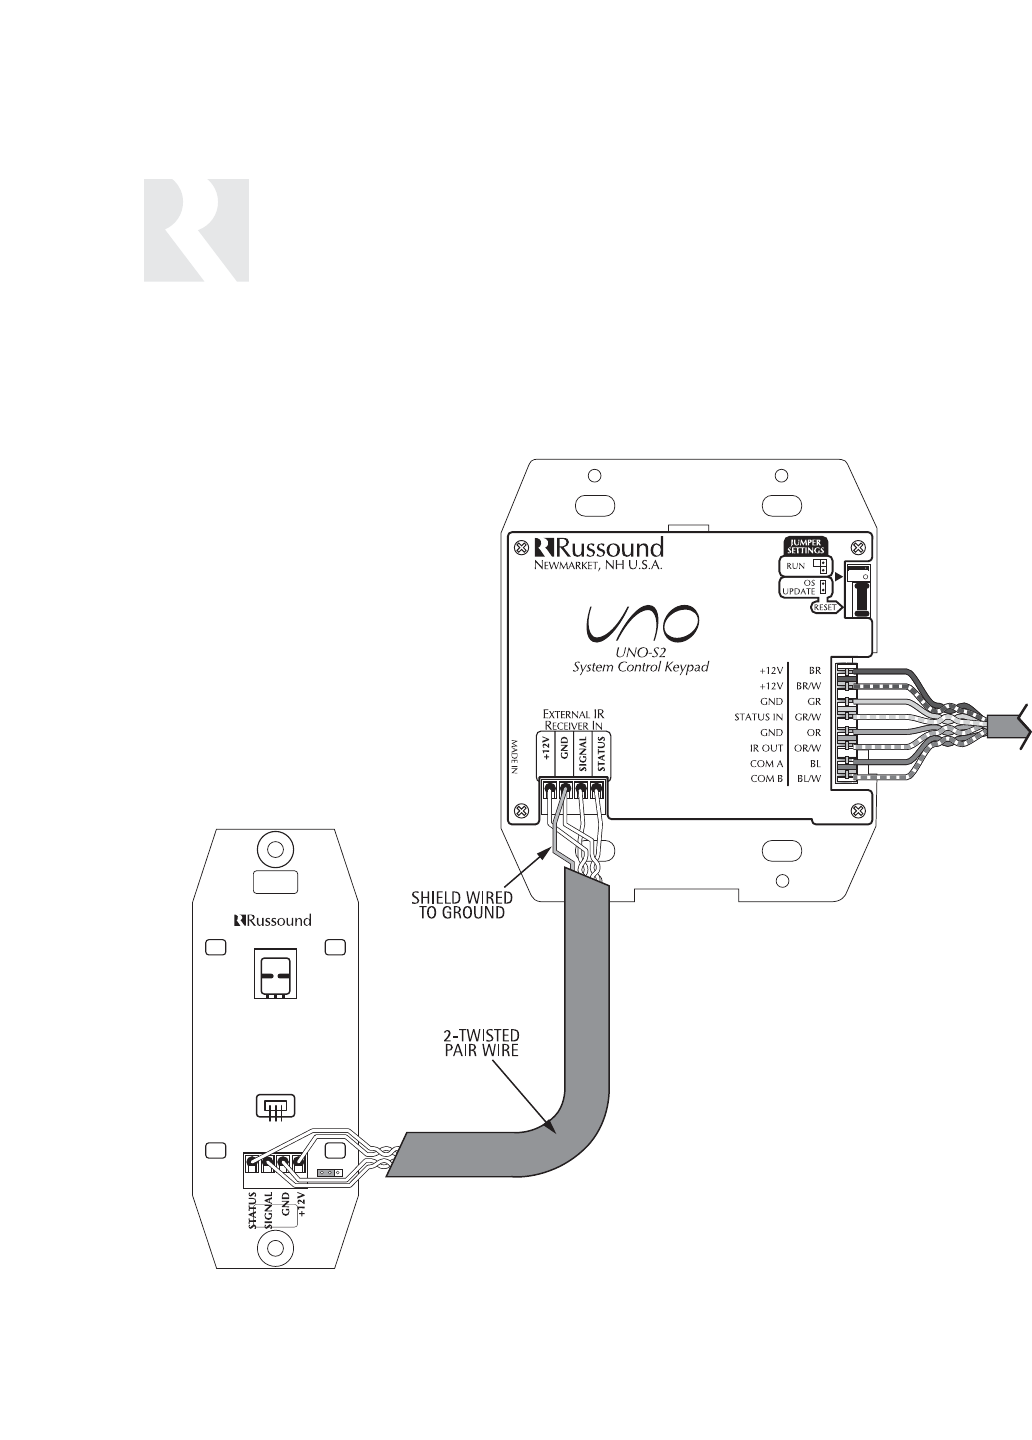 bg1a speakercraft ir receiver wiring diagram \u2022 indy500 co speakercraft ir receiver wiring diagram at gsmportal.co